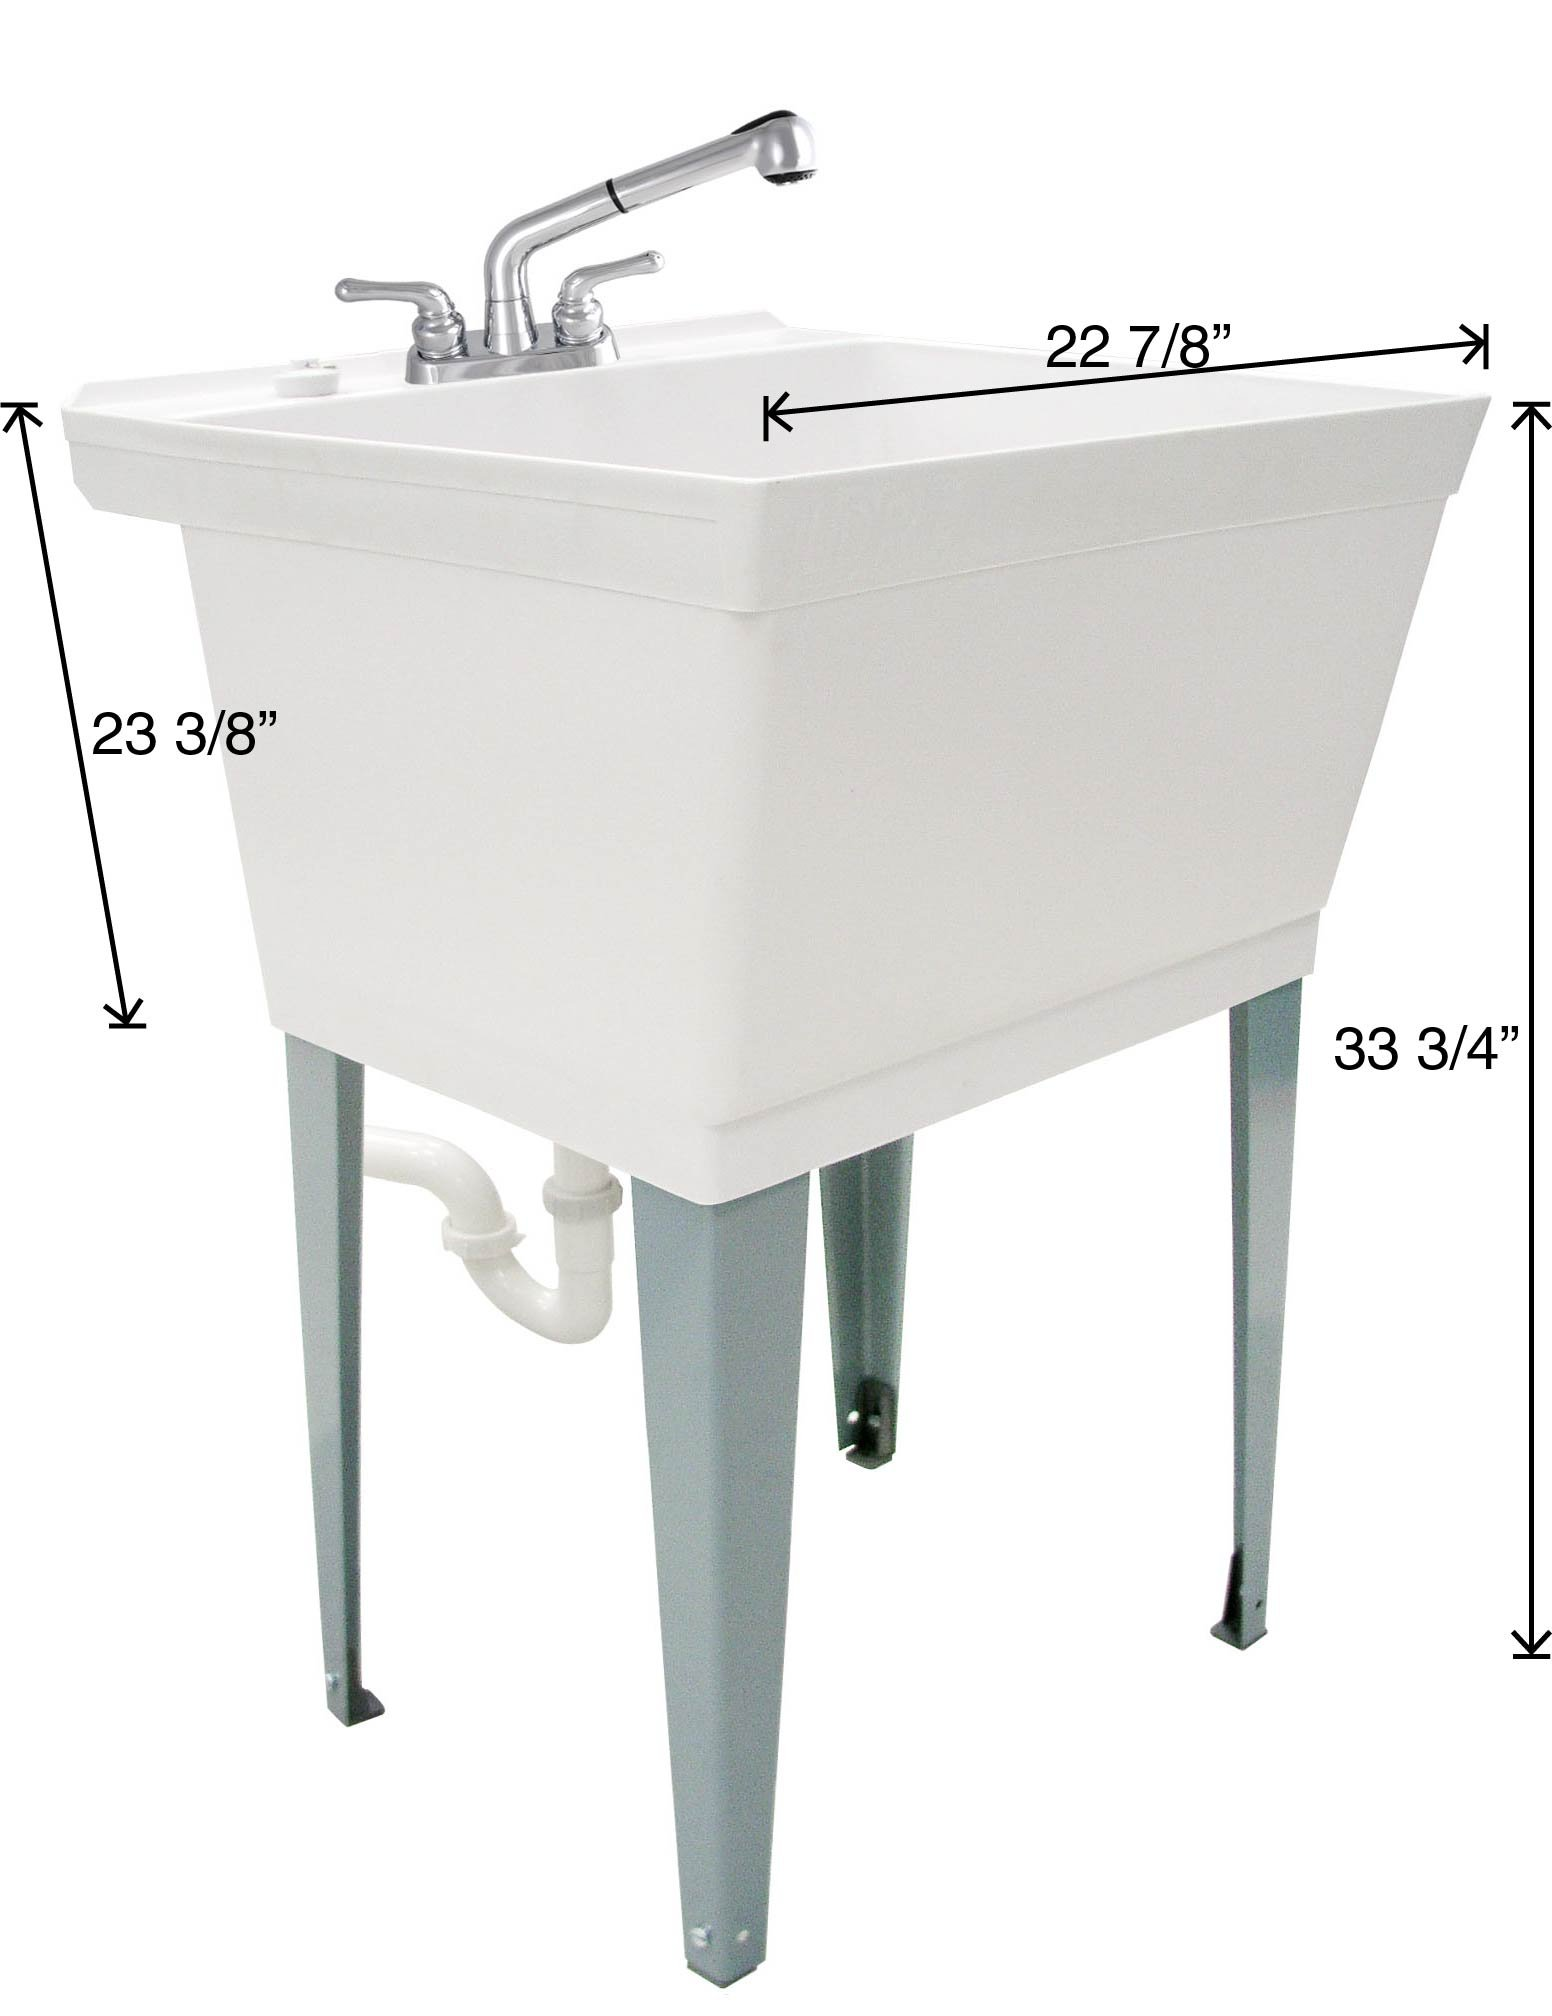 LDR 040 6000 Complete 19-Gallon Laundry Utility Tub with Pull-Out ...